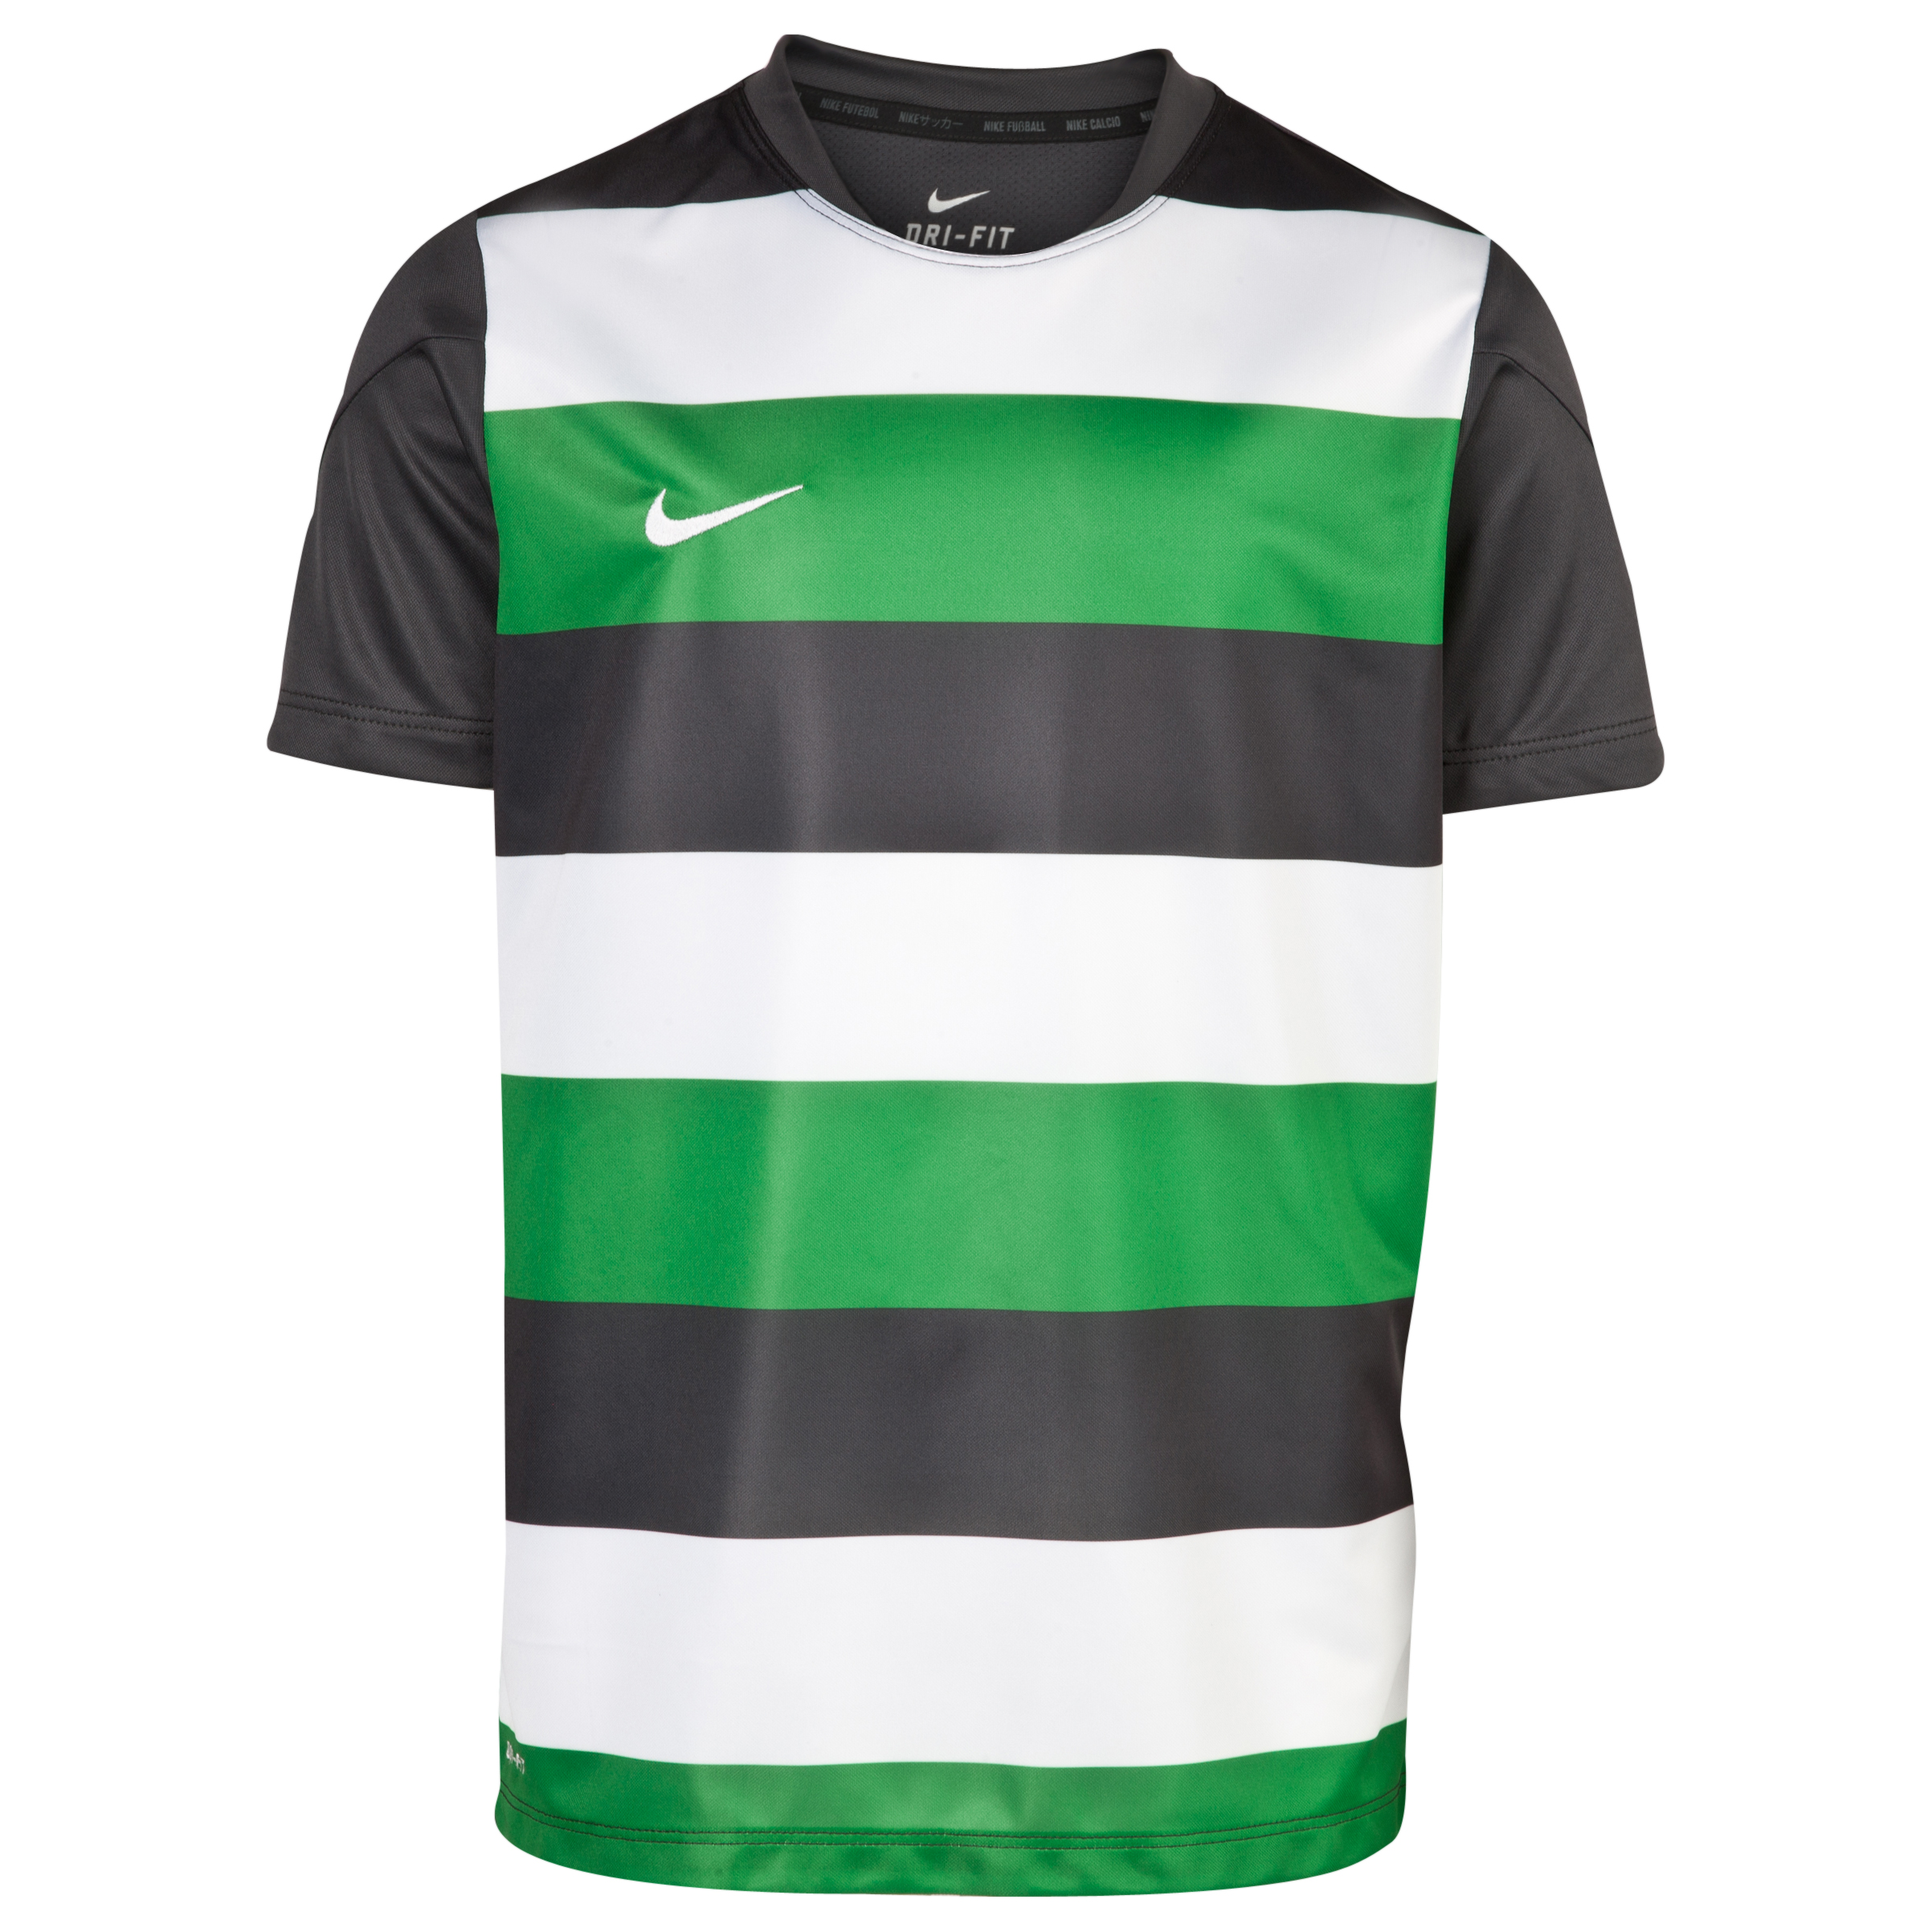 Celtic Short Sleeve Pre Match Top - Green/White - Kids Green